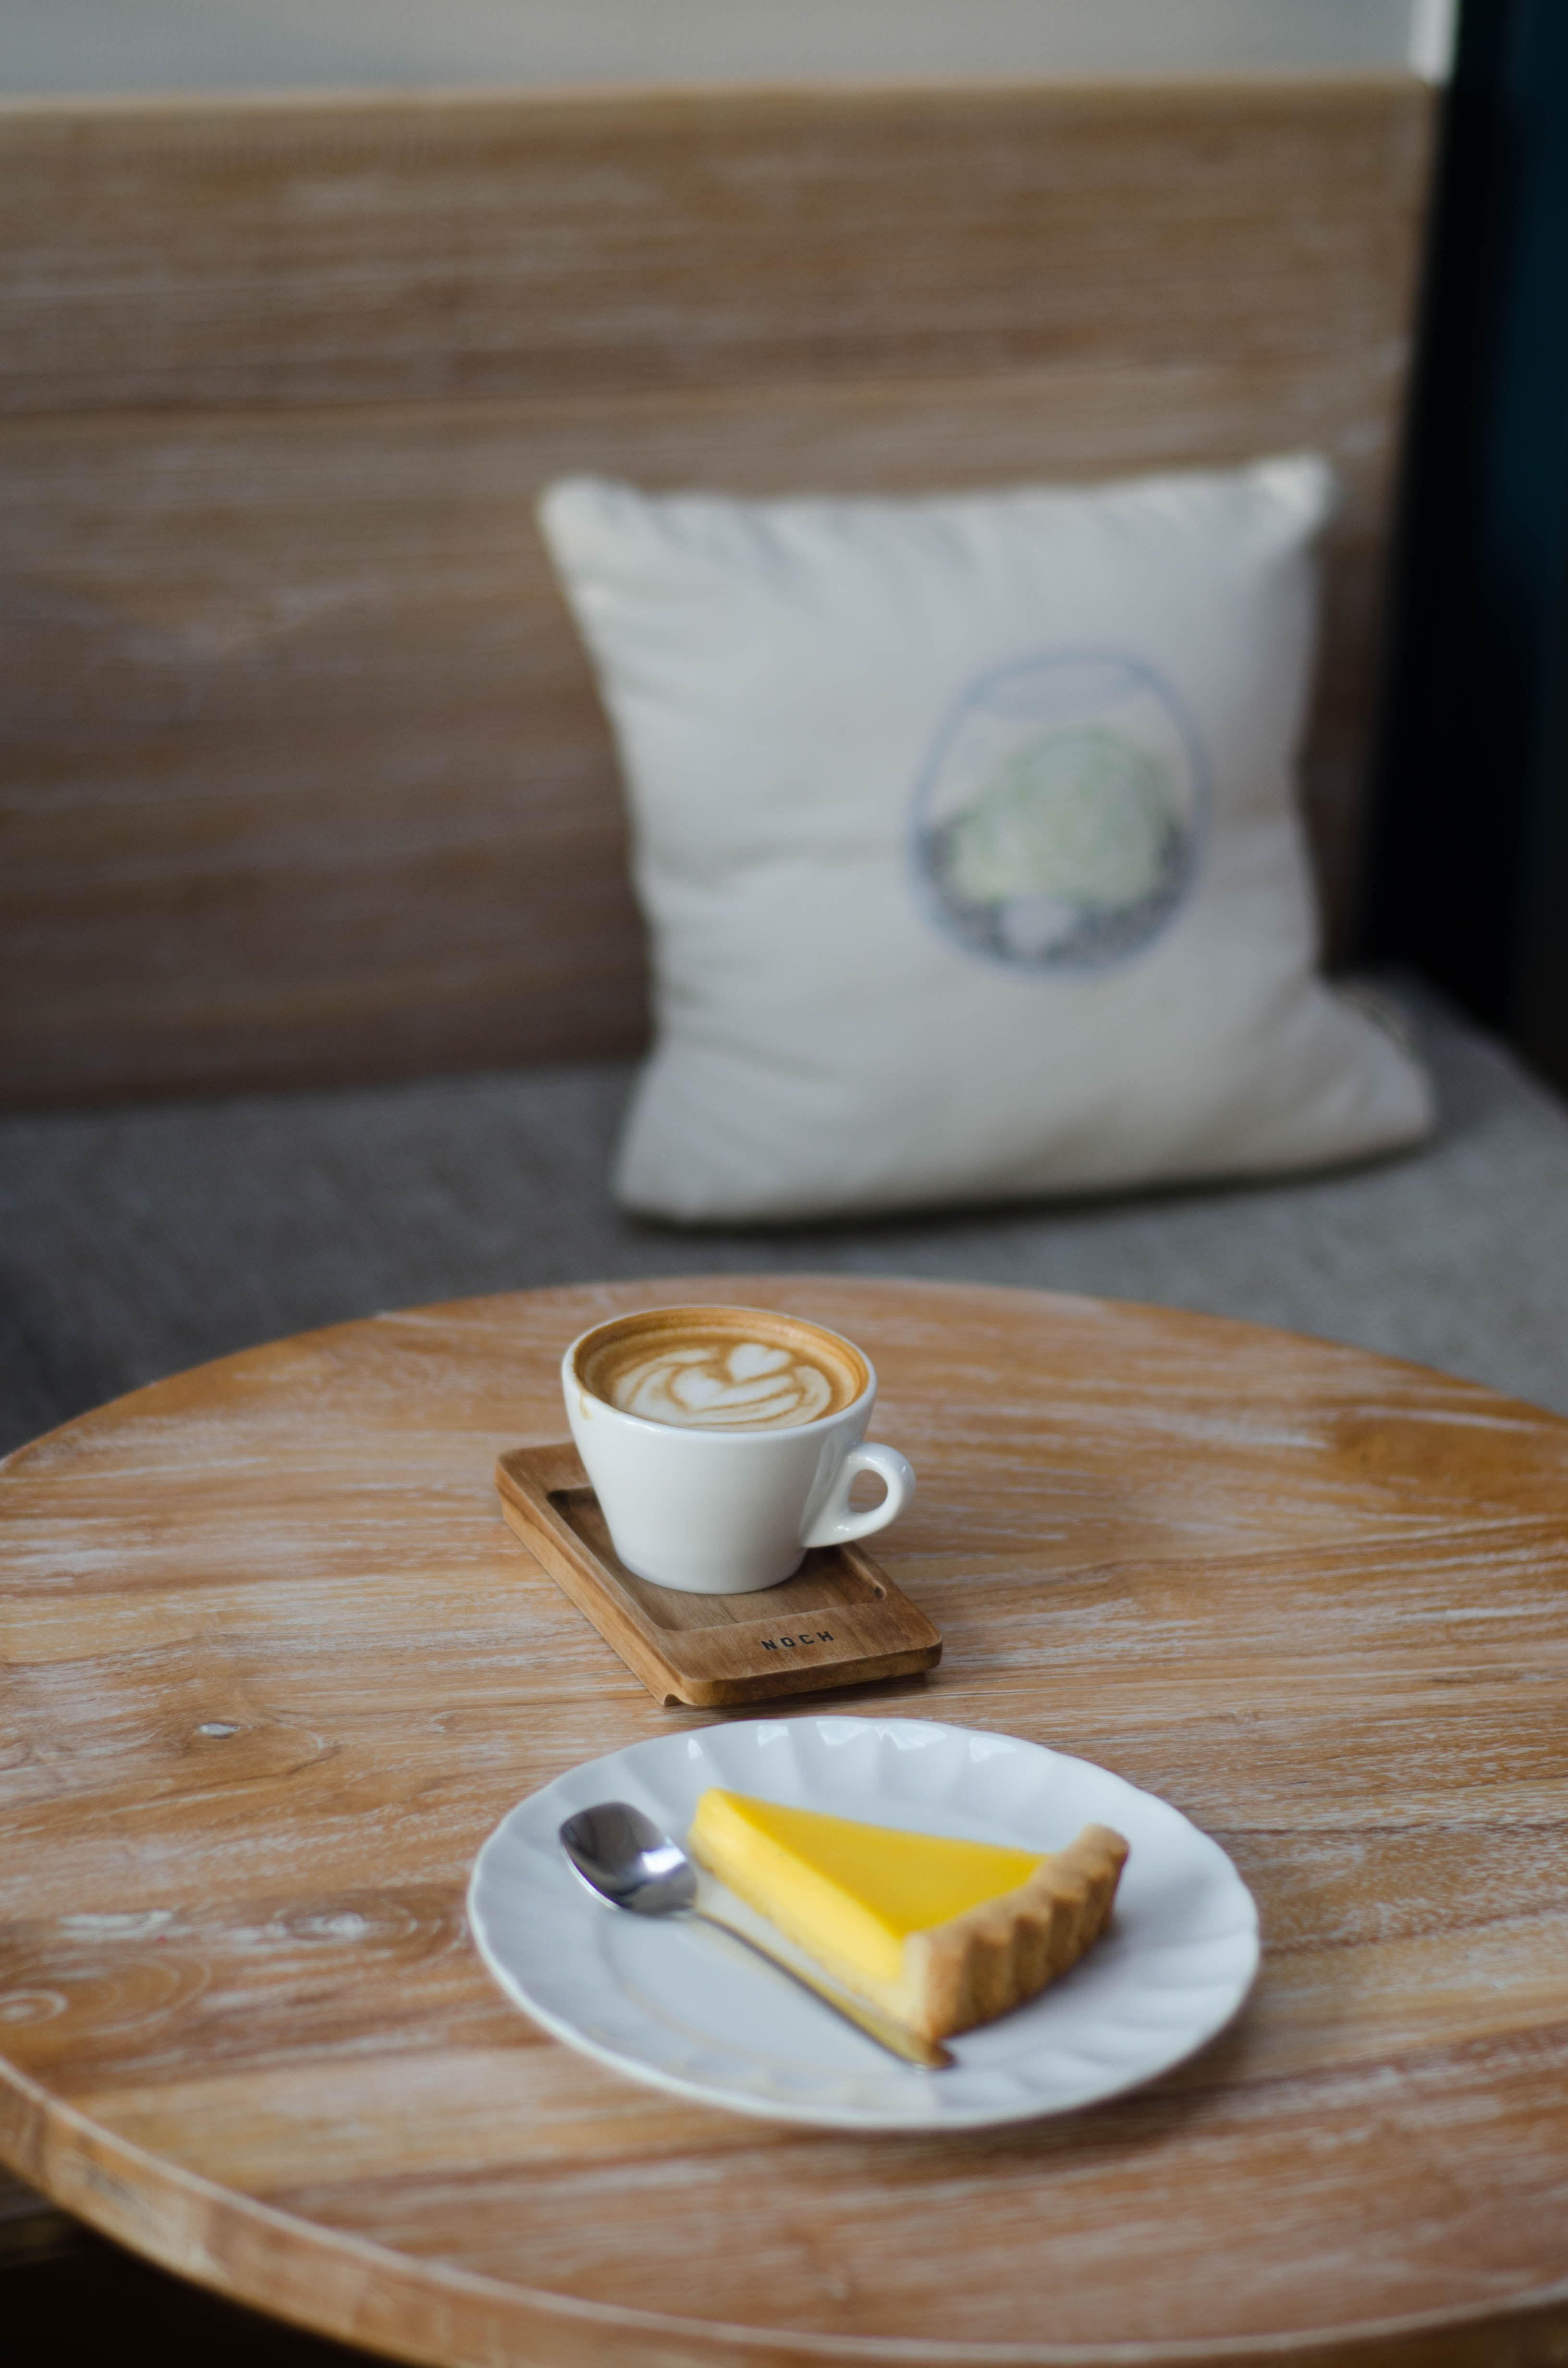 white ceramic teacup with cappuccino beside dessert on plate